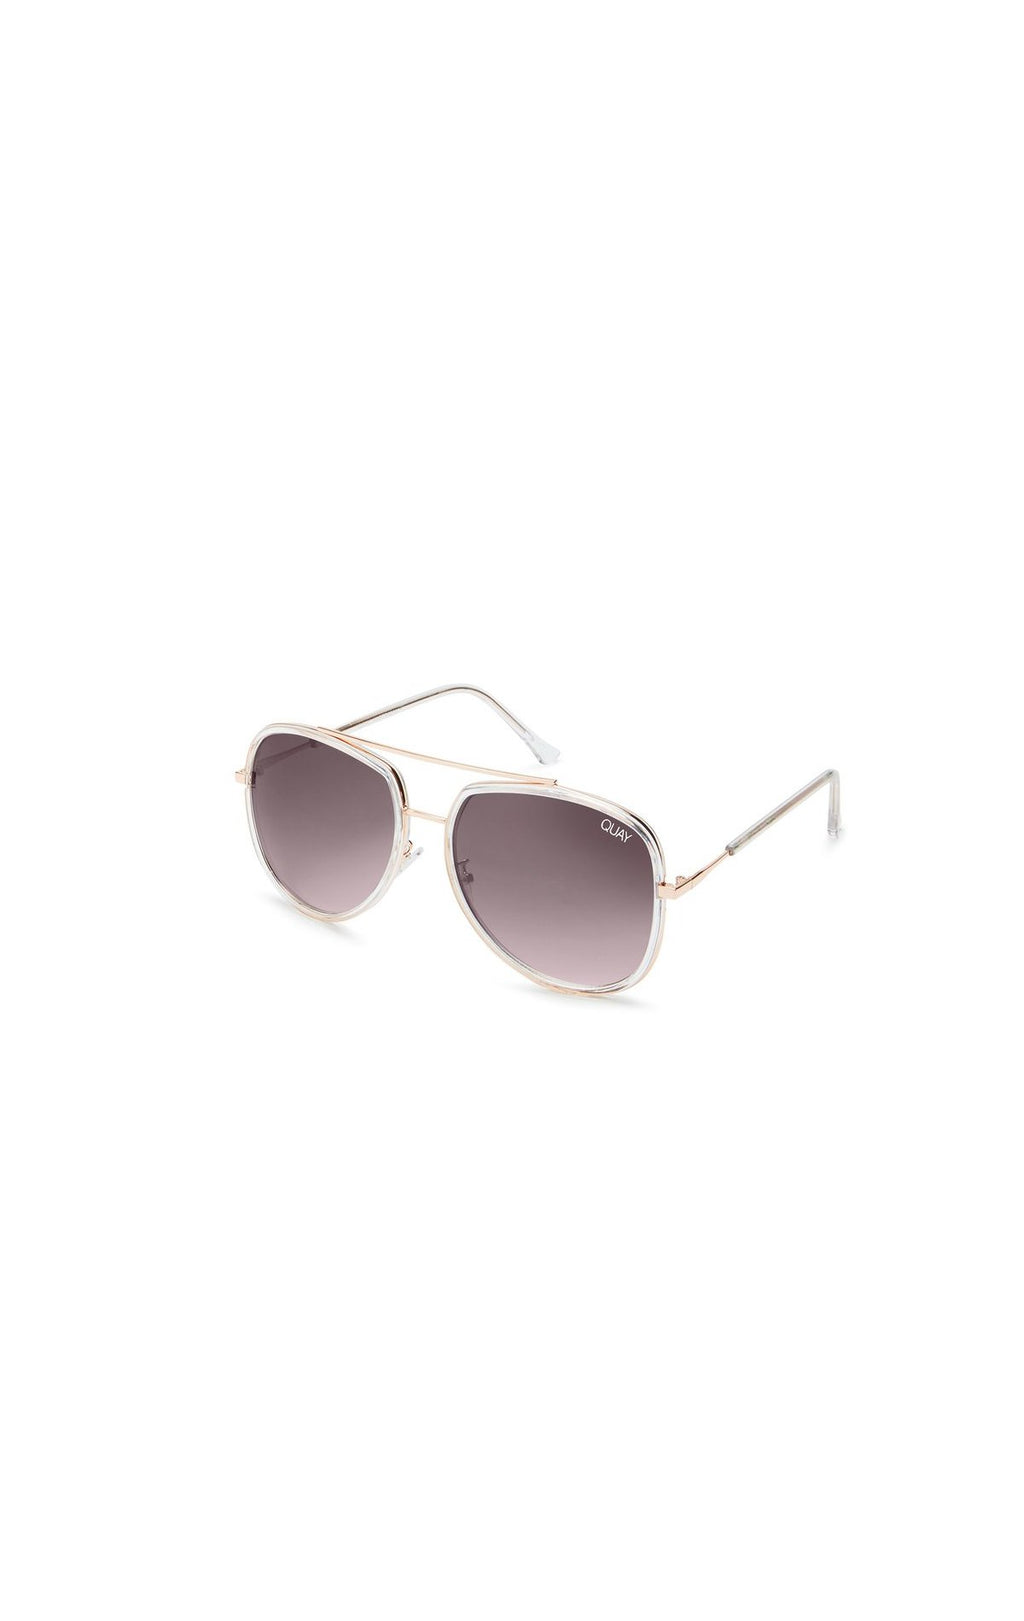 QUAY NEEDING FAME OVERSIZED AVIATOR SUNGLASSES ANGLE